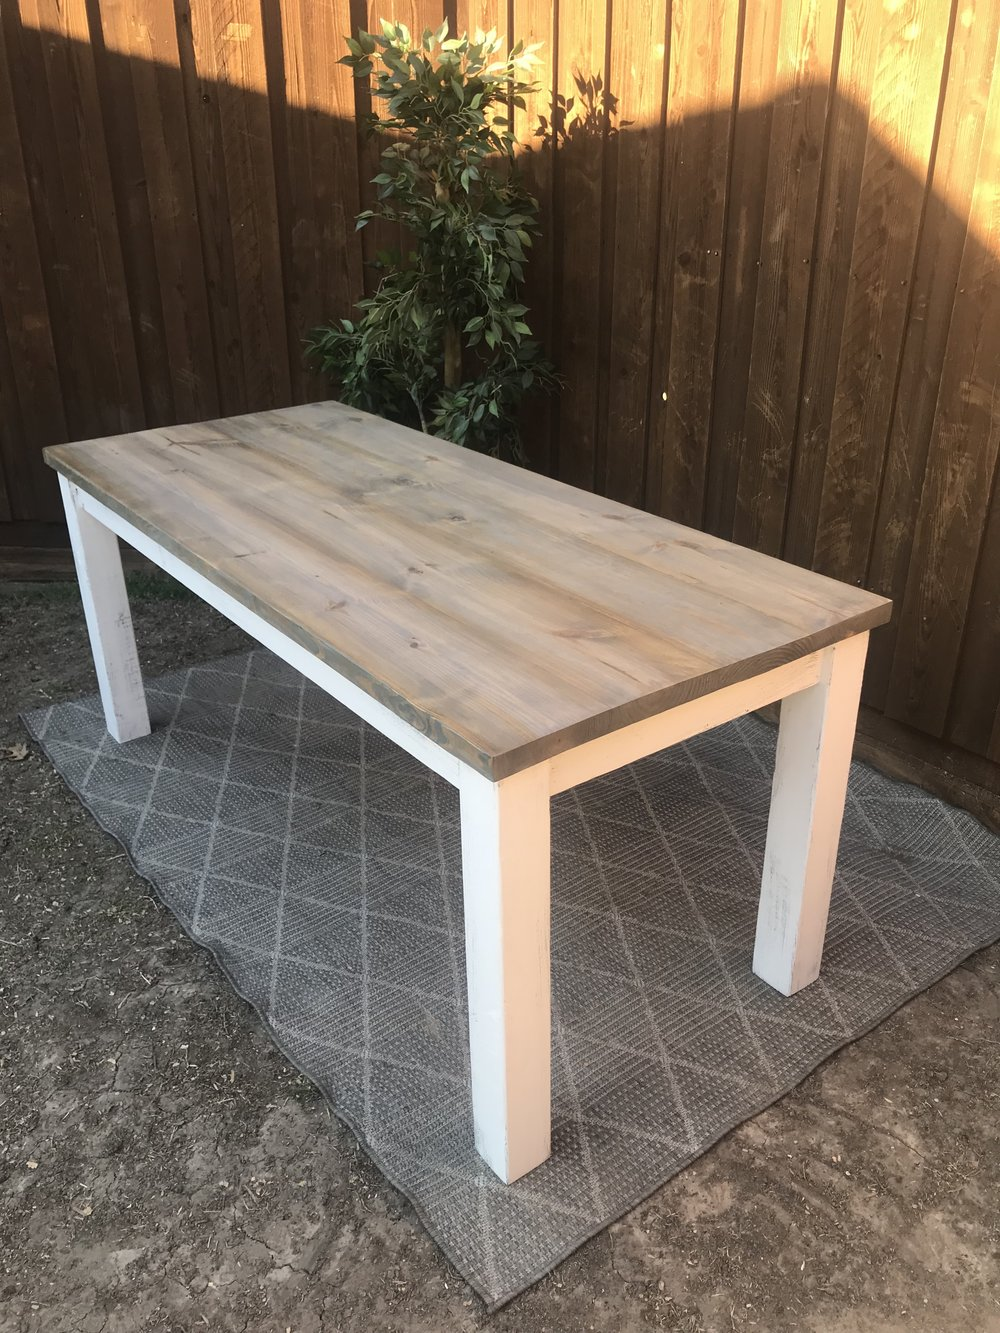 wood: PINE/ stain: weathered gray